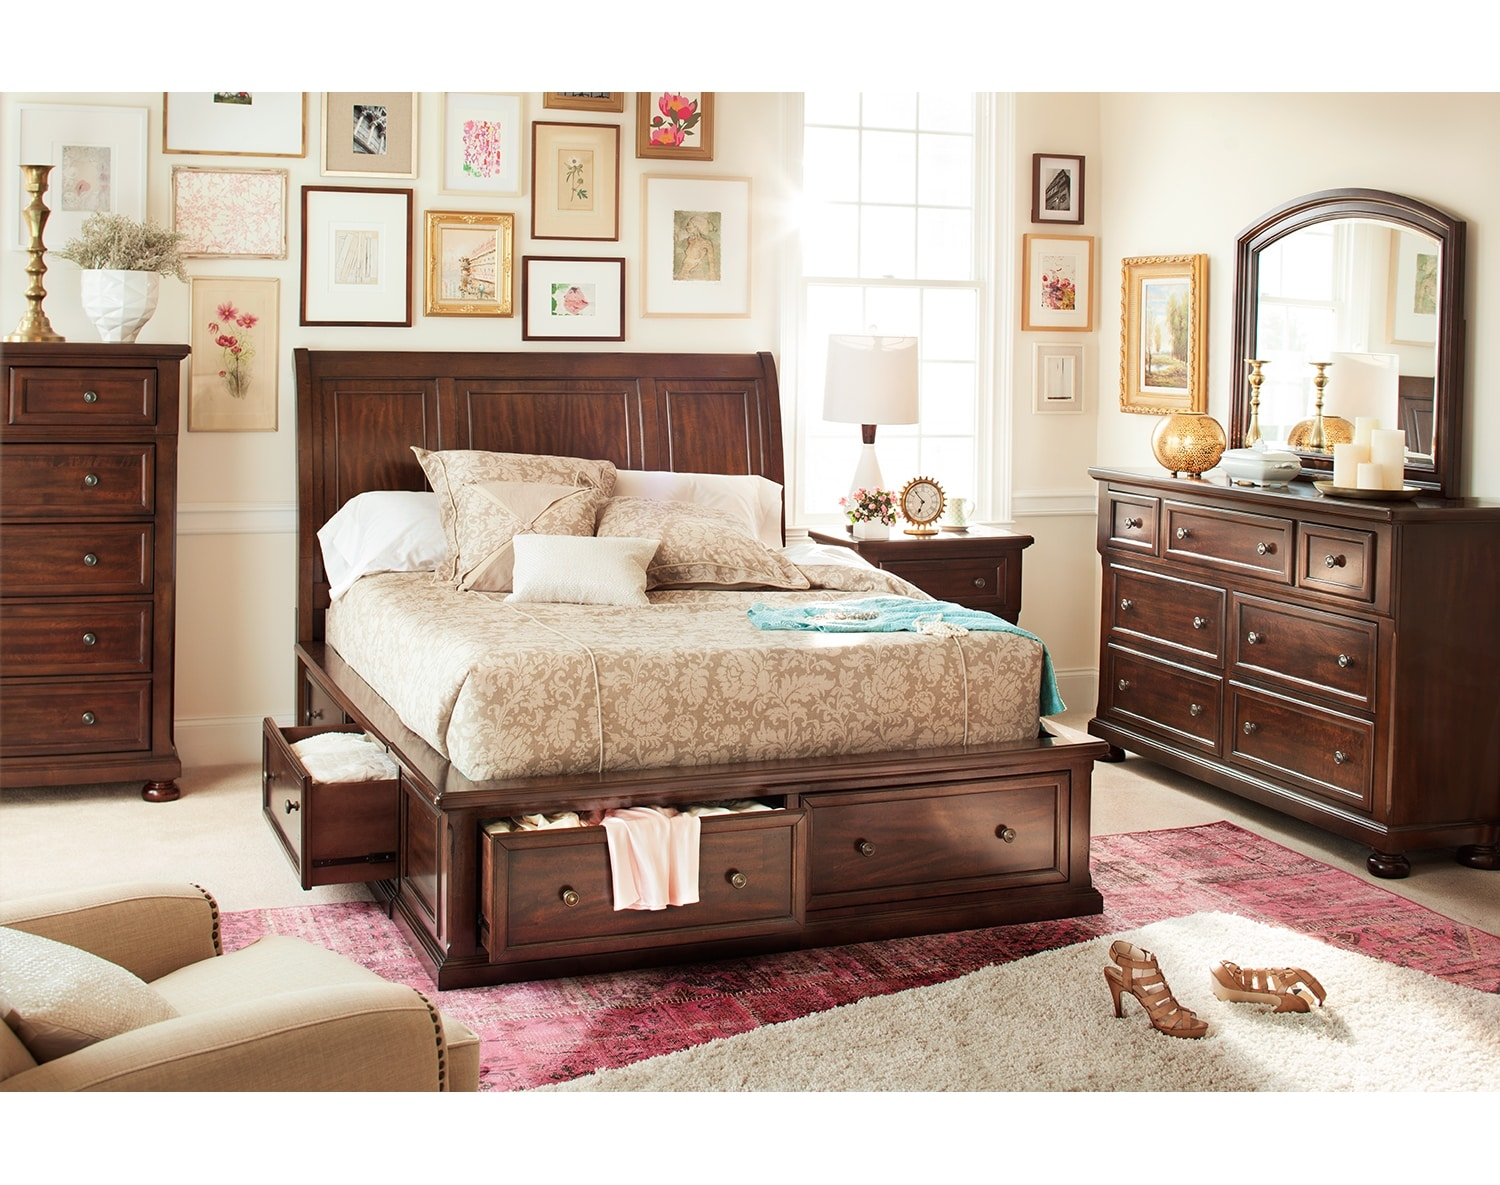 sets city value elegant bedroom furniture decorating